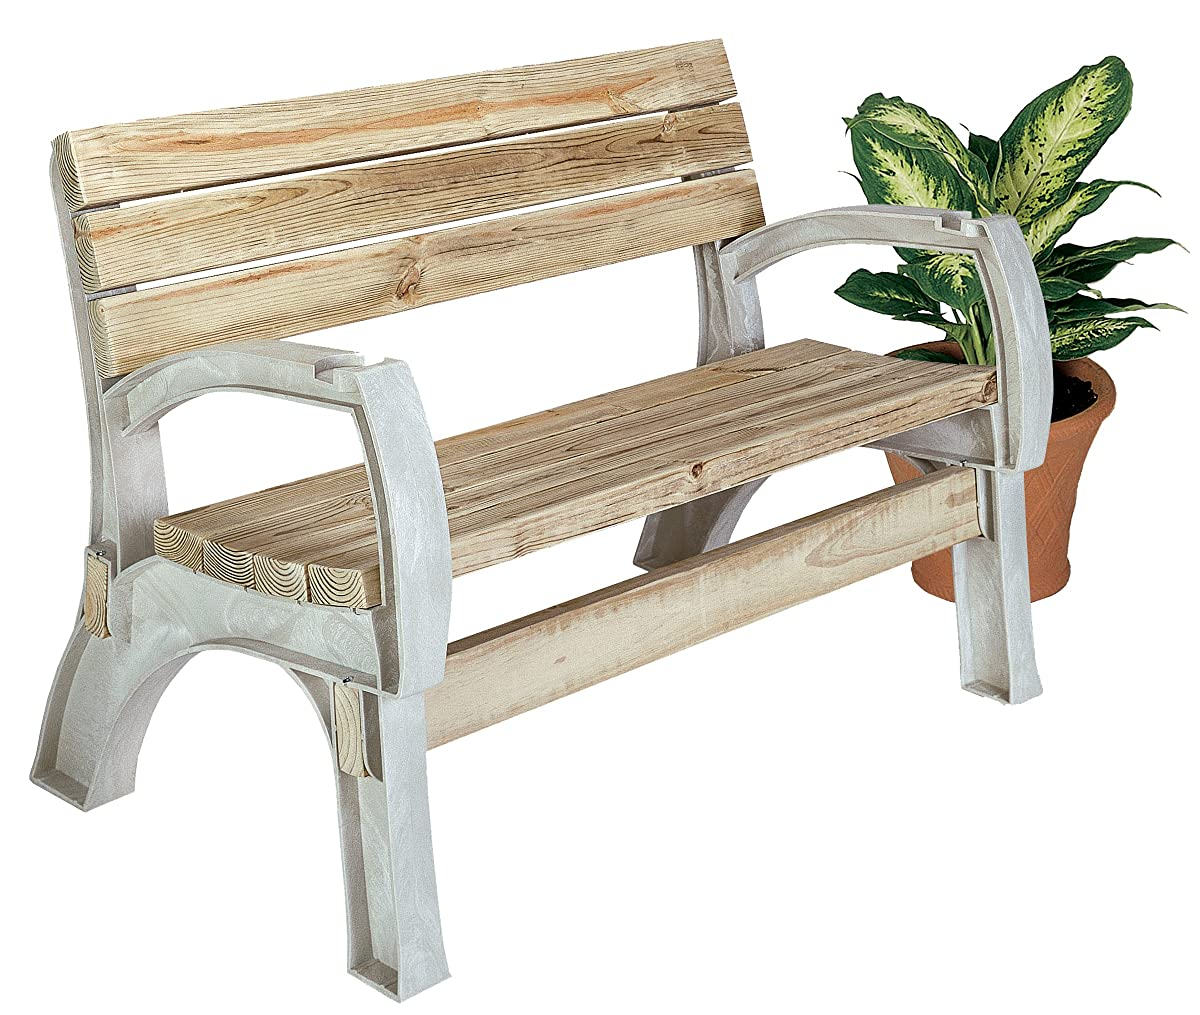 Hopkins 90134ONLMI 2x4basics AnySize Chair or Bench Ends, Sand